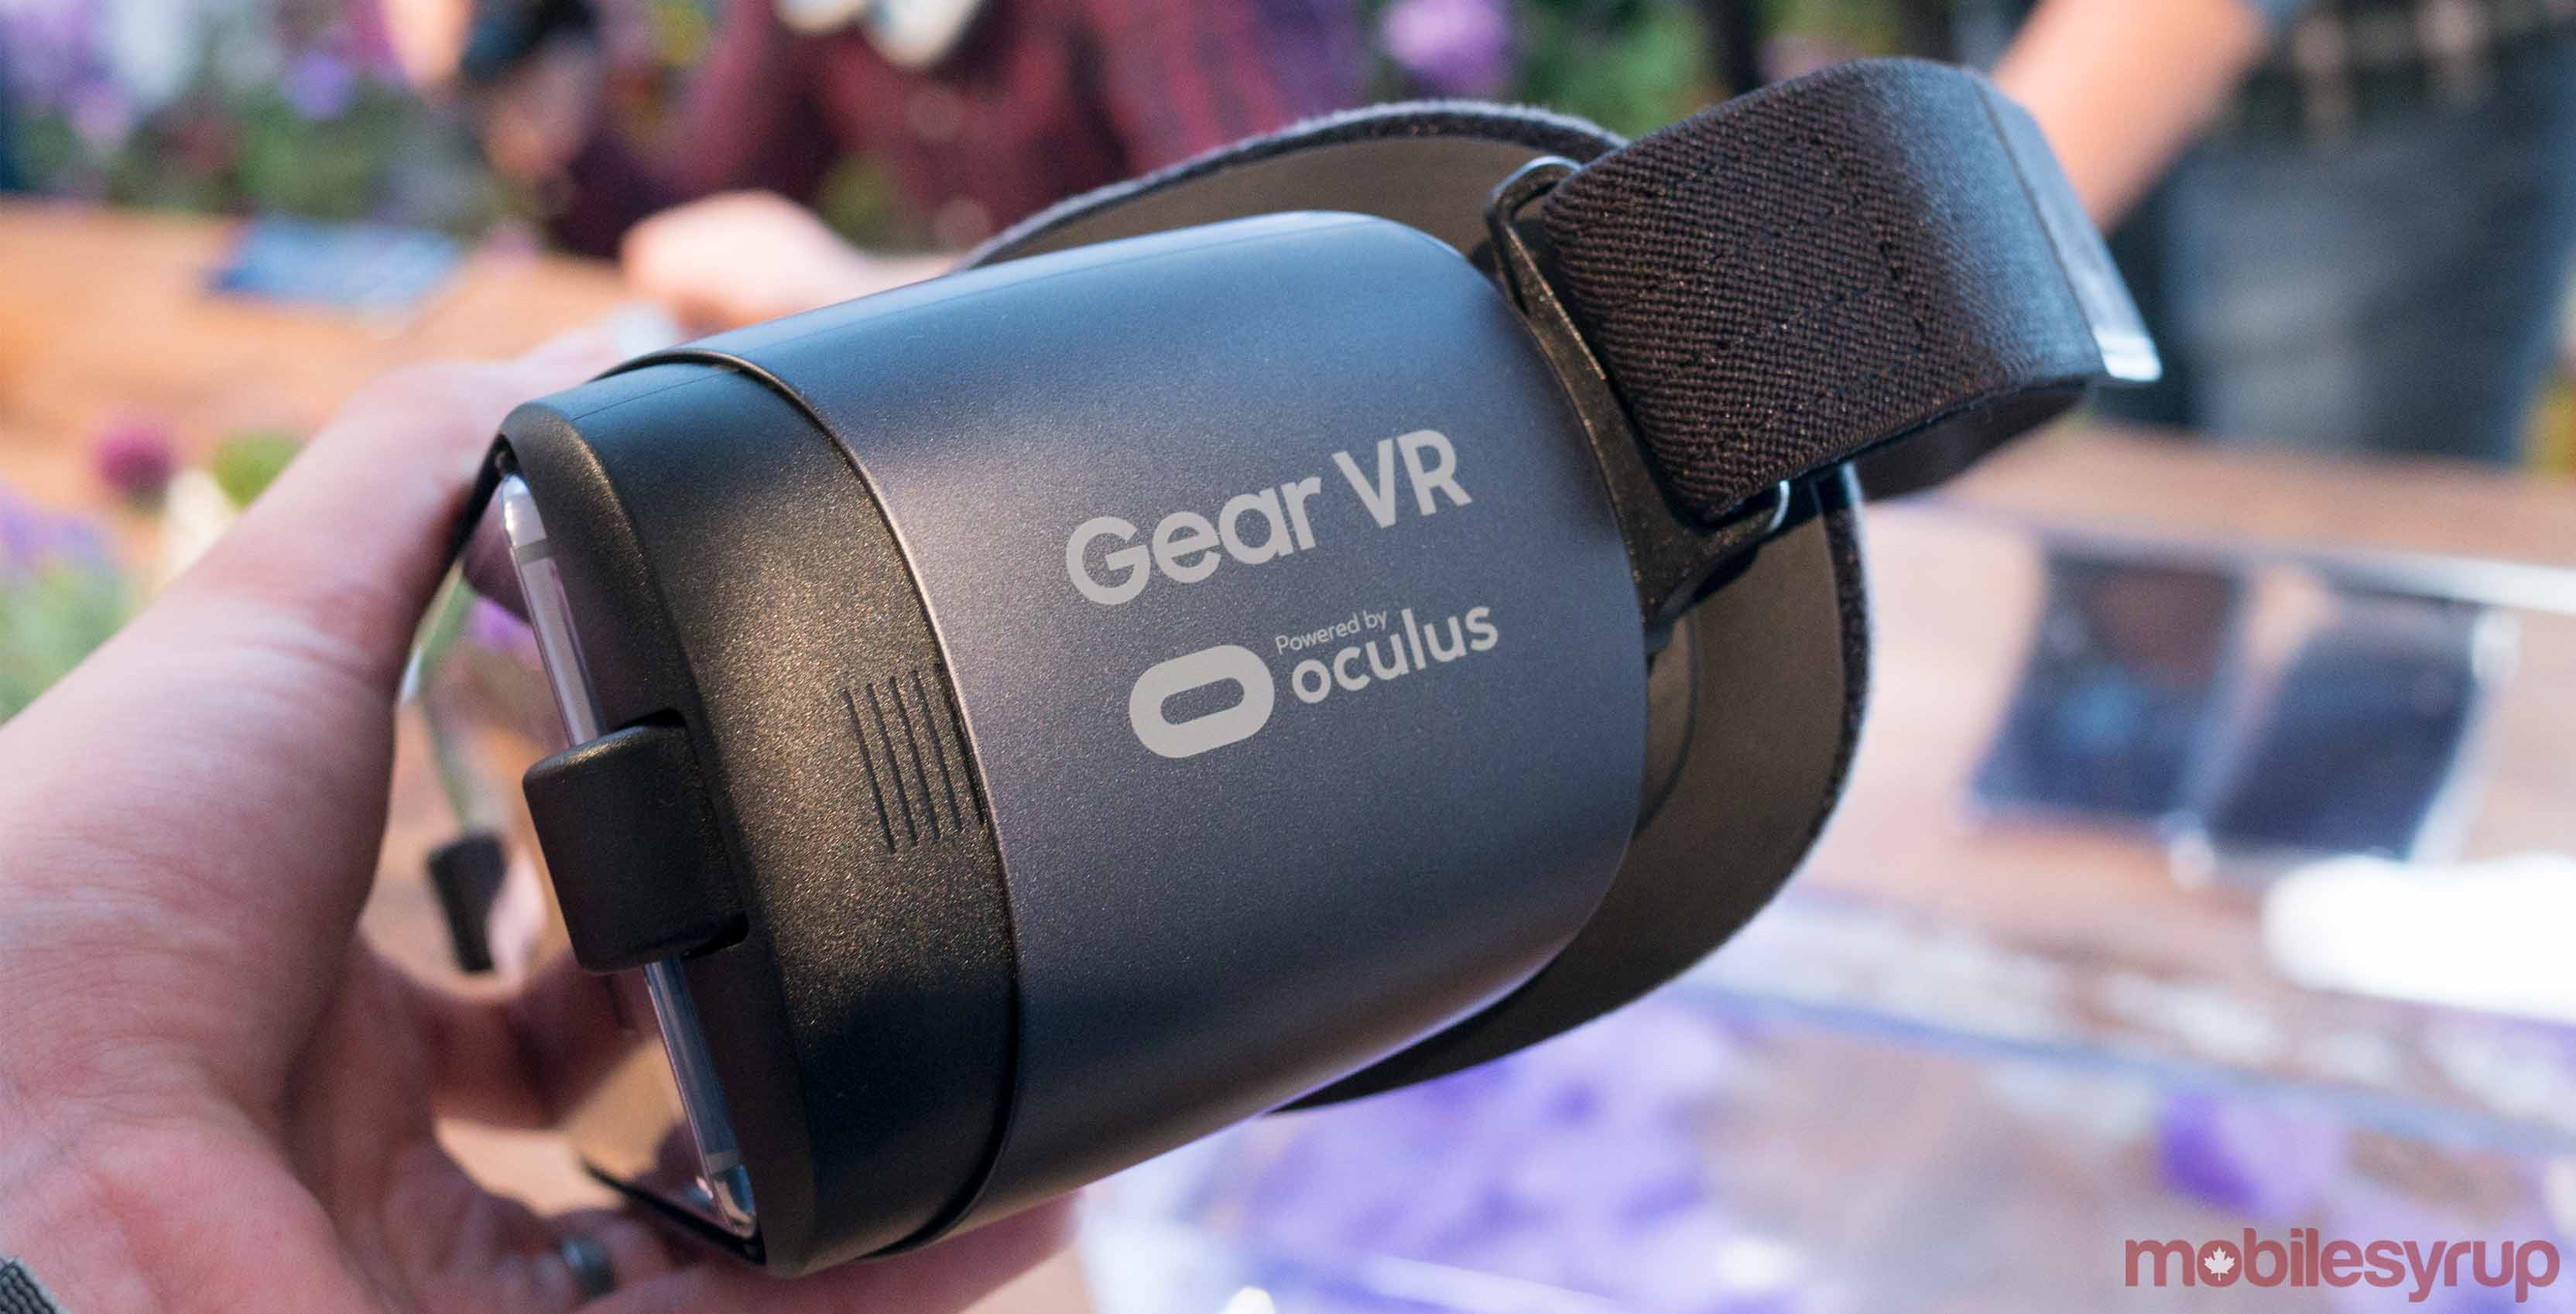 Gear VR side view